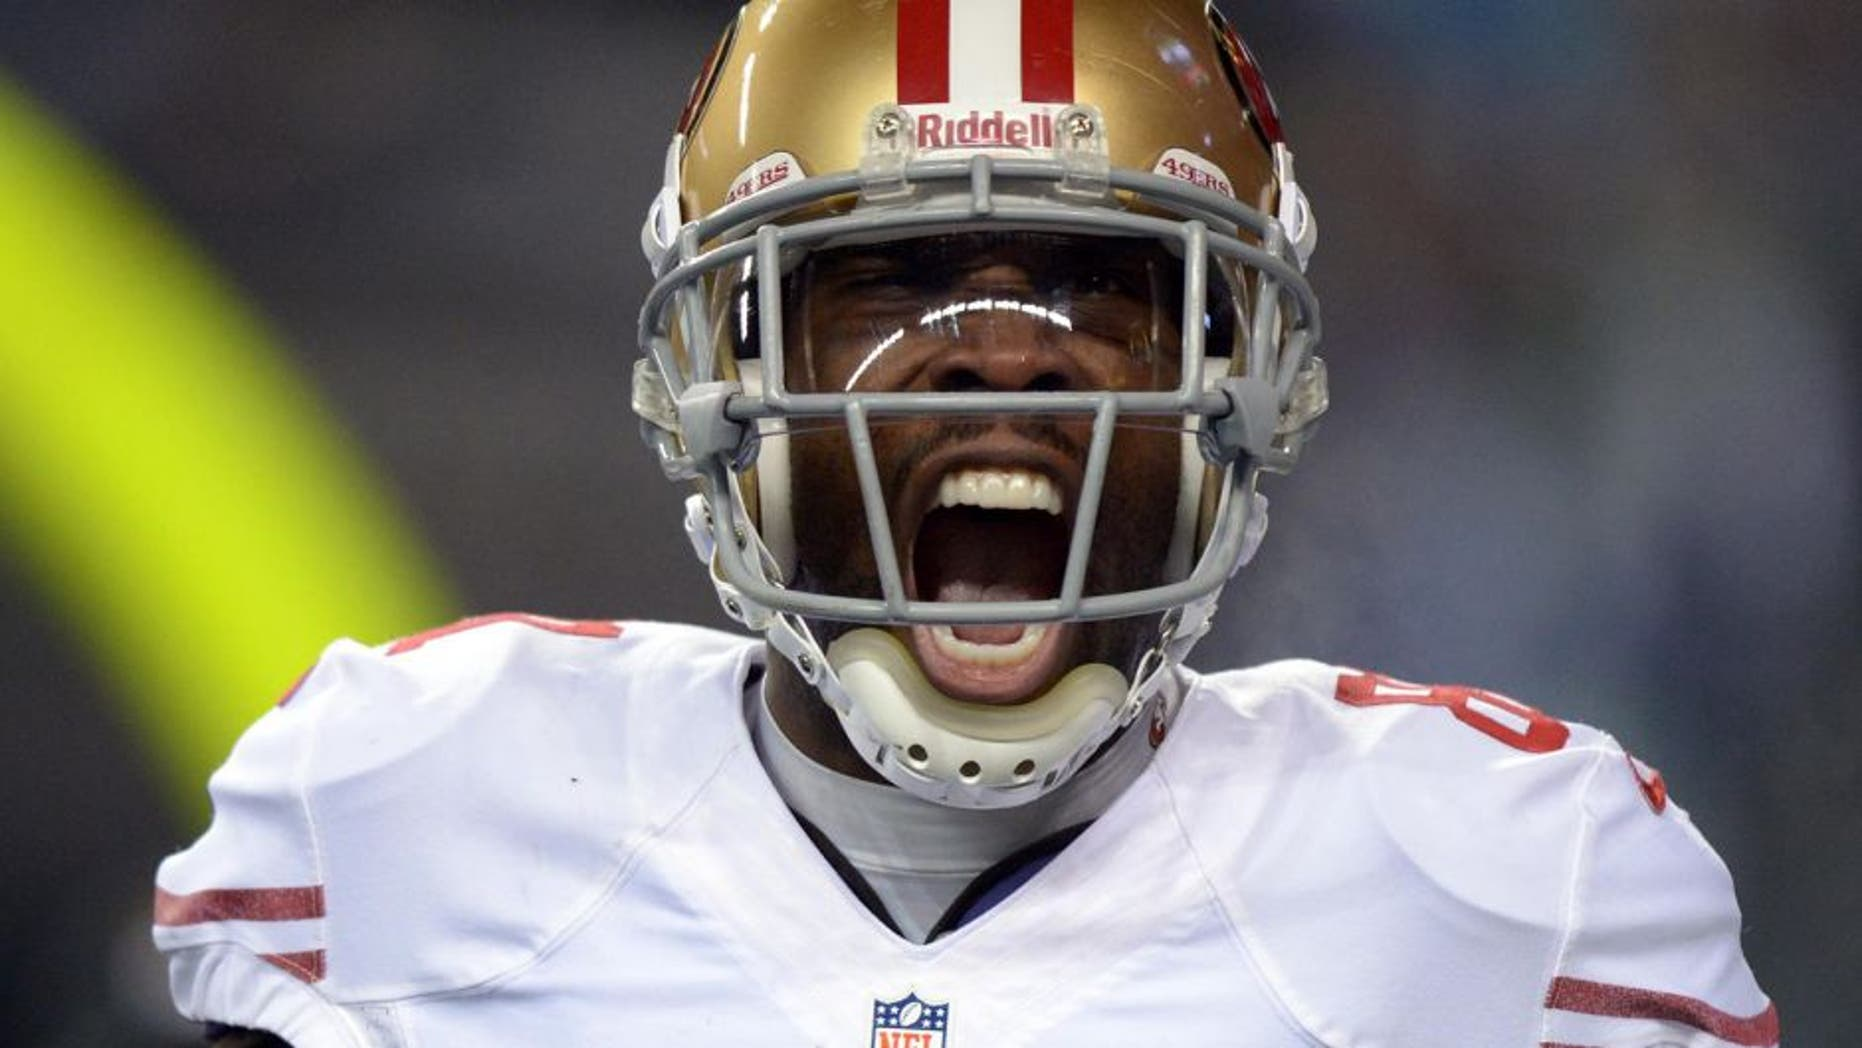 Jan 19, 2014; Seattle, WA, USA; San Francisco 49ers wide receiver Anquan Boldin (81) celebrates after catching a touchdown pass against the Seattle Seahawks in the third quarter of the 2013 NFC Championship football game at CenturyLink Field. Mandatory Credit: Kirby Lee-USA TODAY Sports